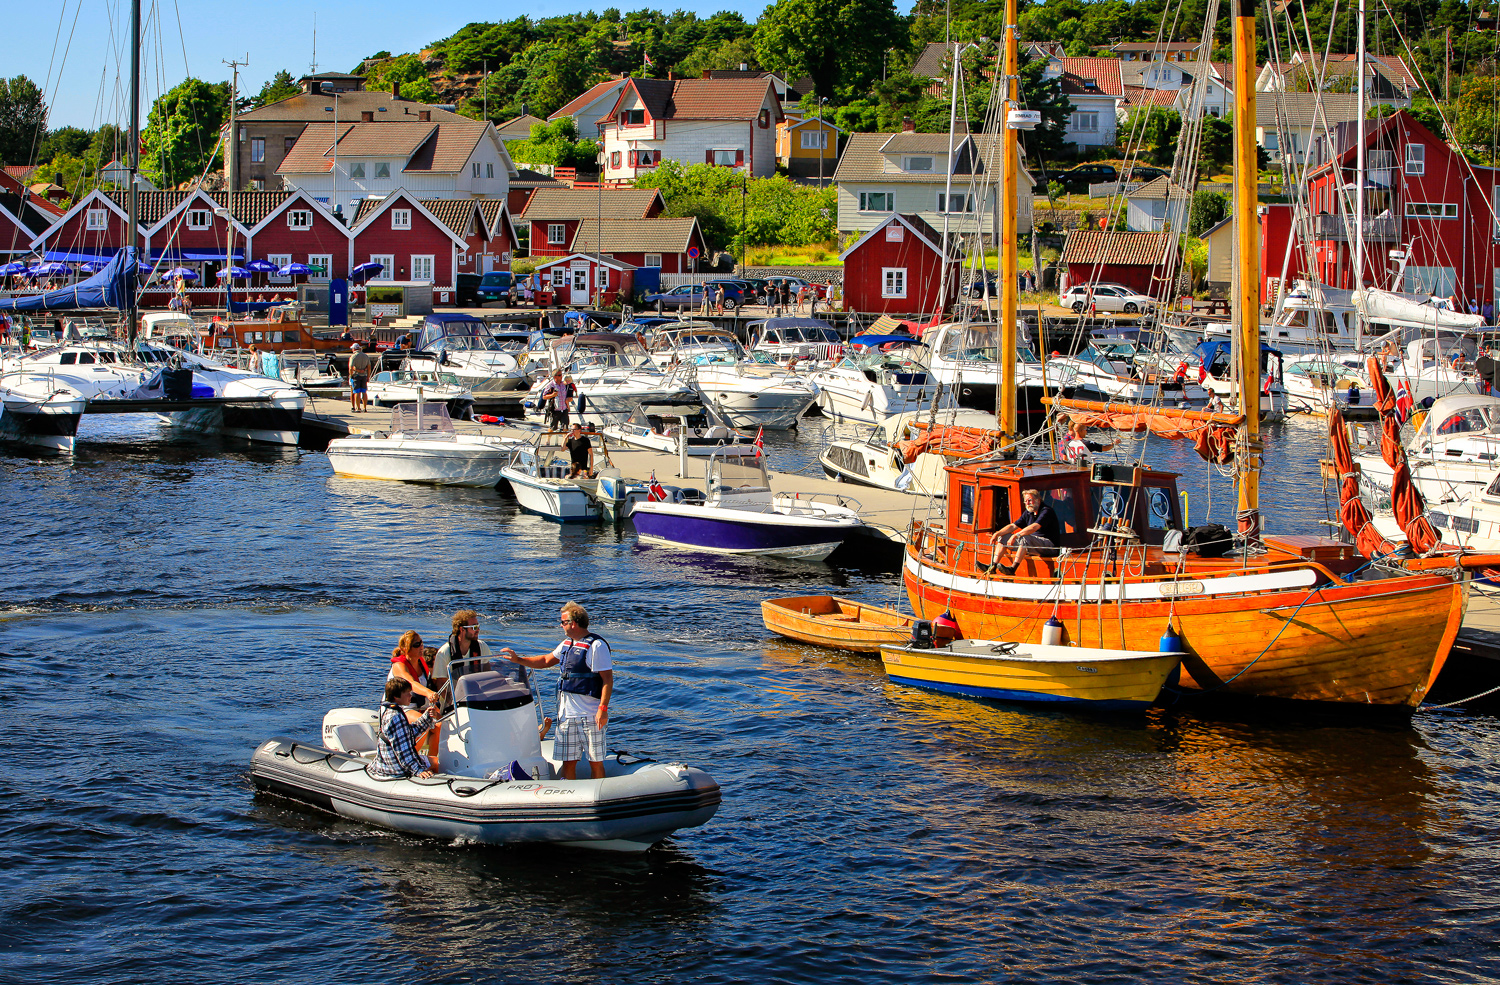 The Skjærhalden Harbour is the pulsating center of Hvaler in summer. The famous red warehouses entice you with their versatile restaurants. Seafarers and landlubbers alike feel comfortable in the crowded street.